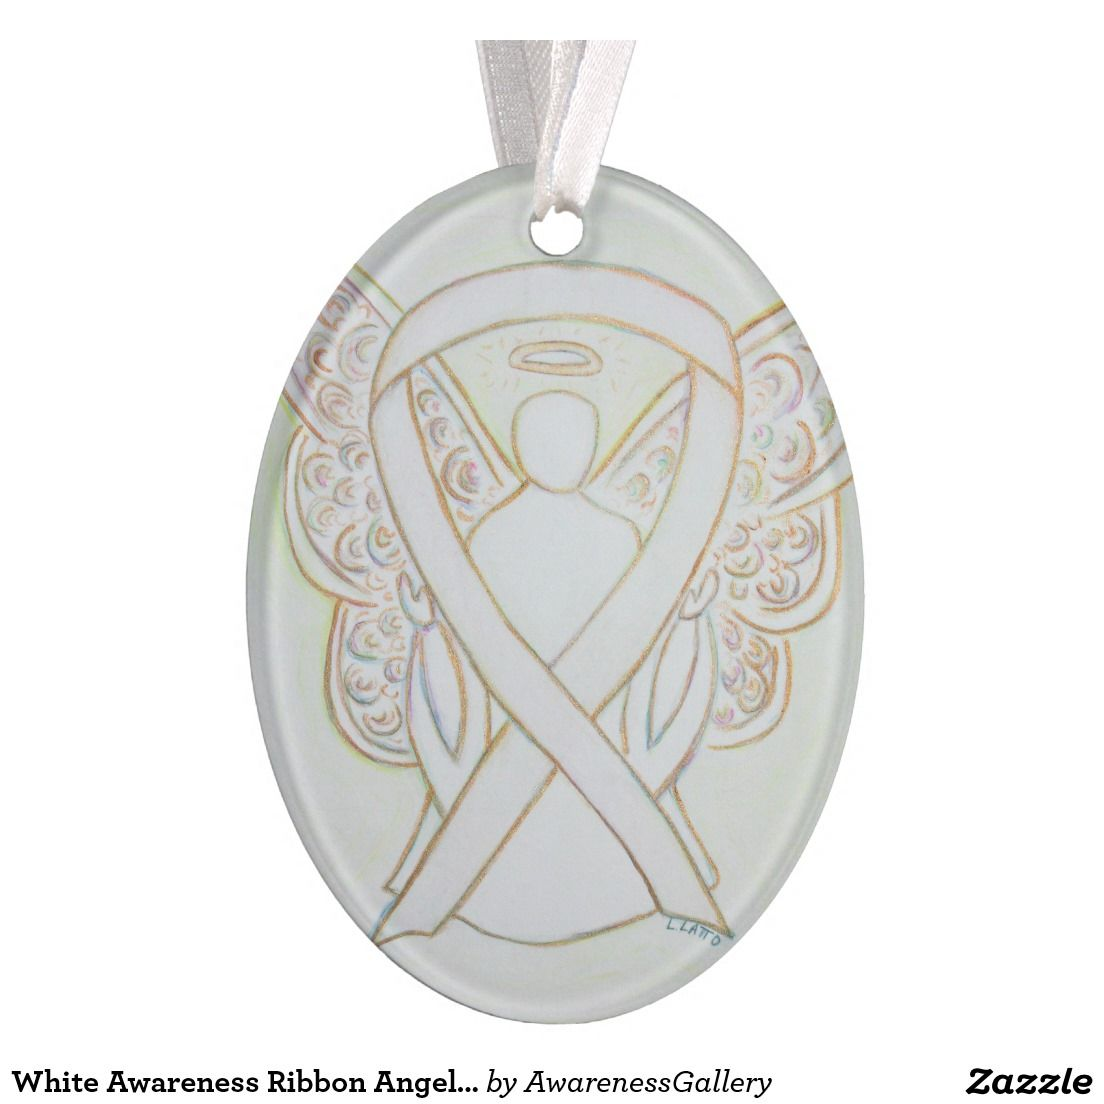 White Awareness Ribbon Angel Ornament Pendant White Awareness